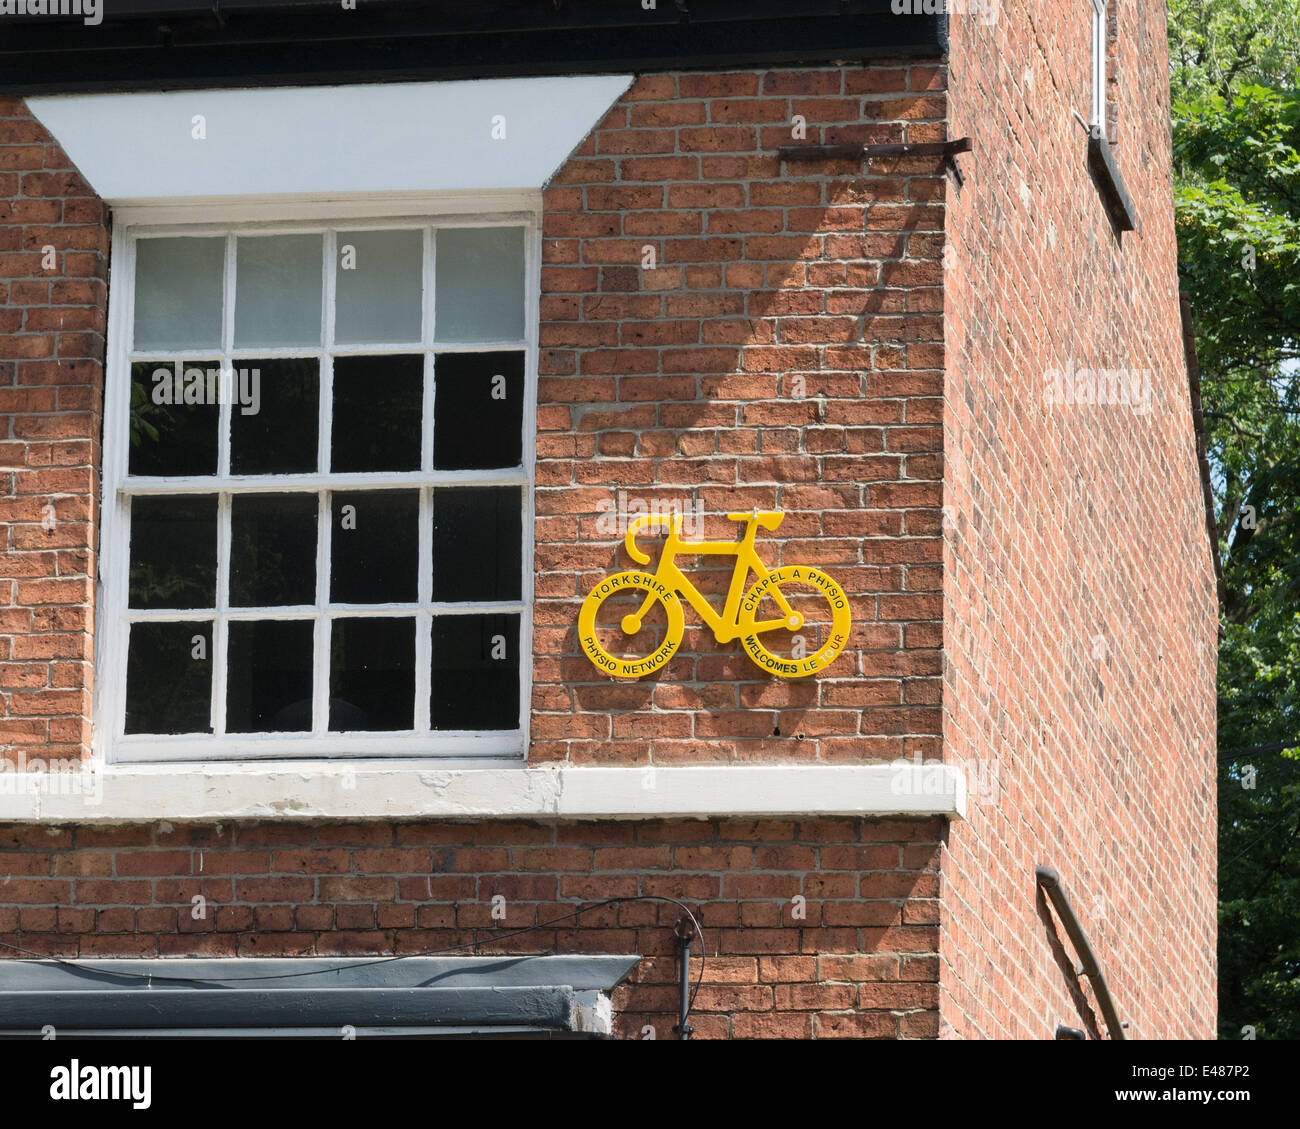 Chapel Allerton, Leeds, UK. July 5th 2014.  Local businesses decorate to celebrate the Tour De France, which is - Stock Image